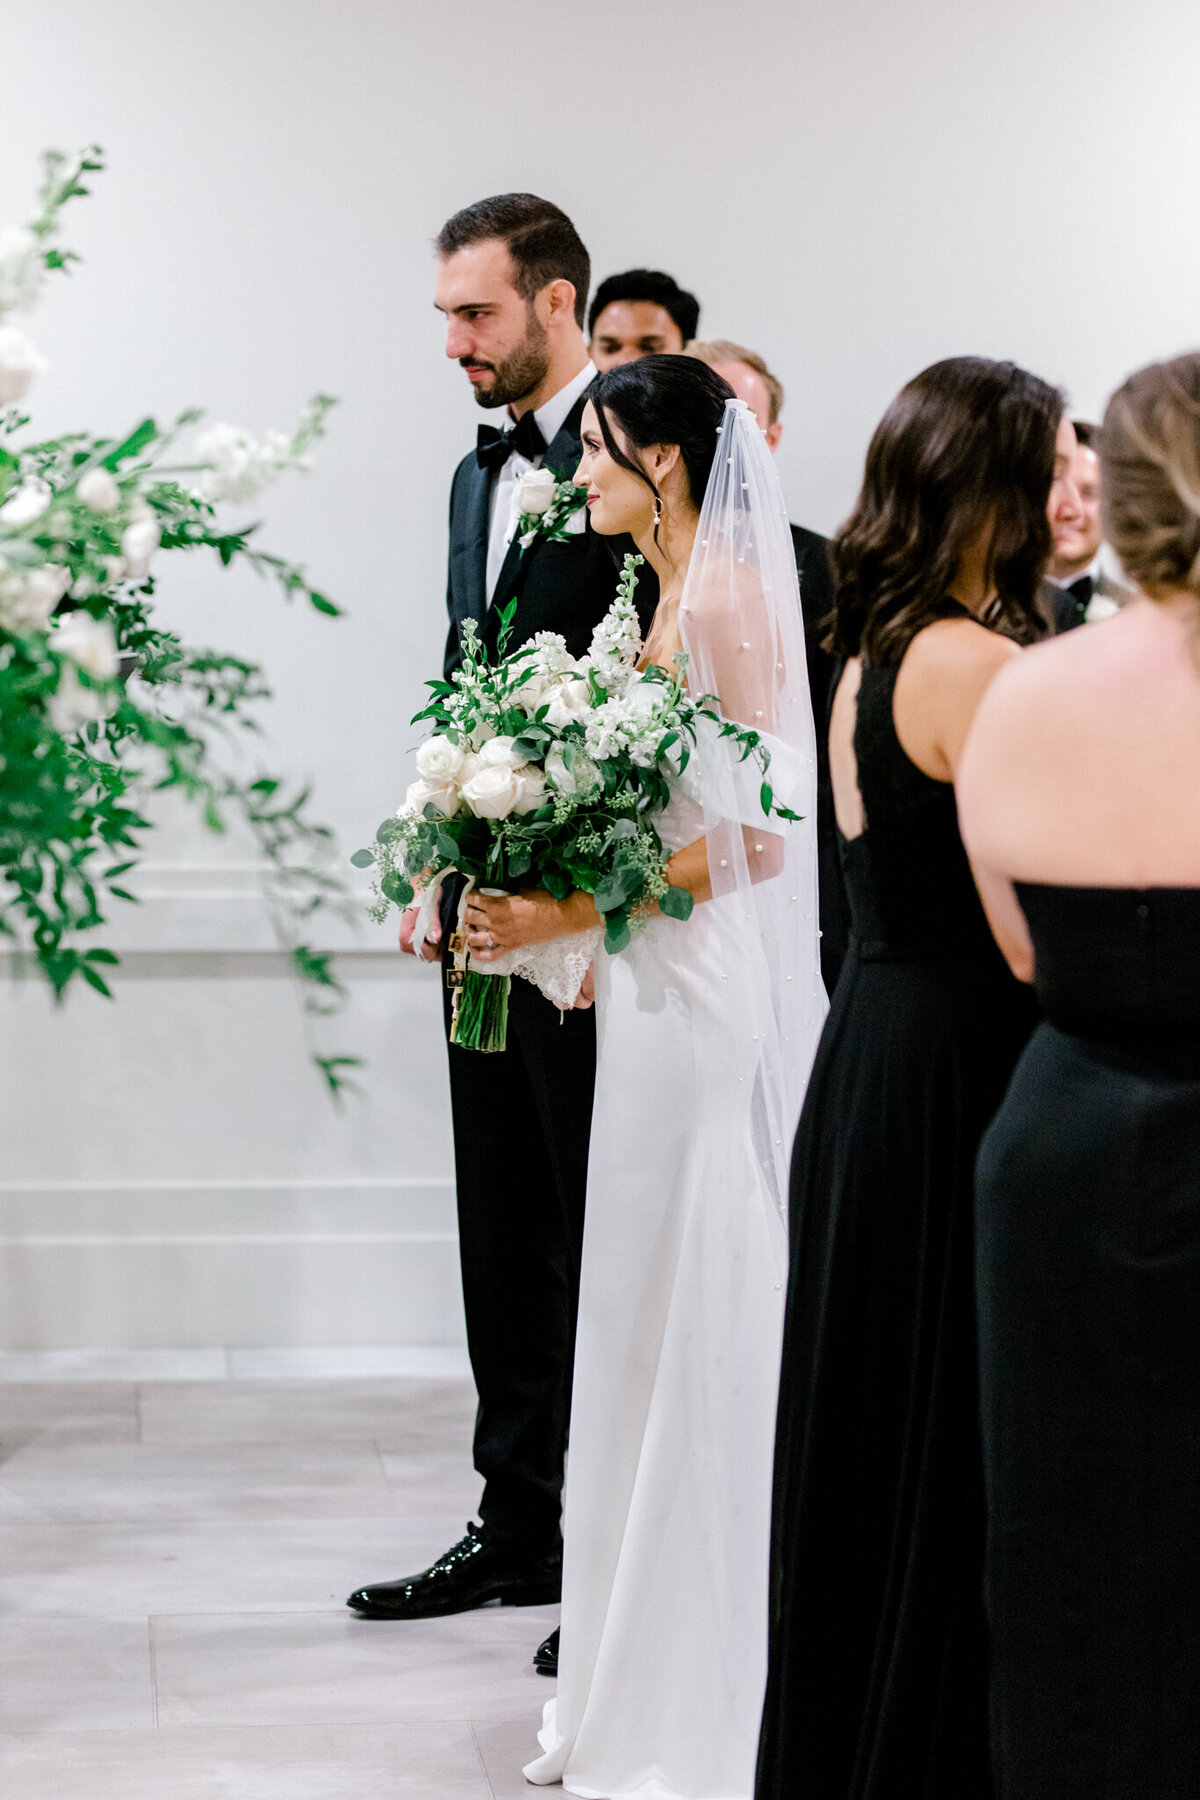 Hope & Zack's Wedding at the Carlisle Room | Dallas Wedding Photographer | Sami Kathryn Photography-52